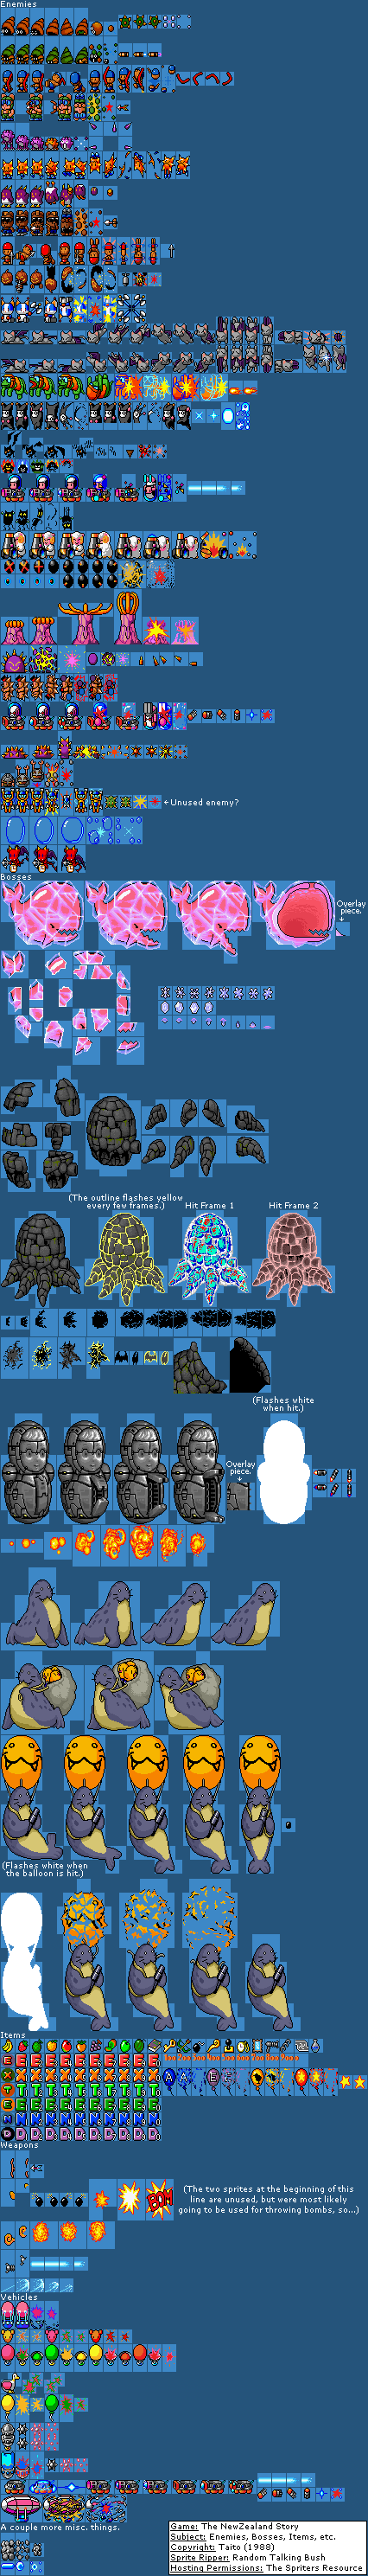 Enemies, Bosses, Items, etc.